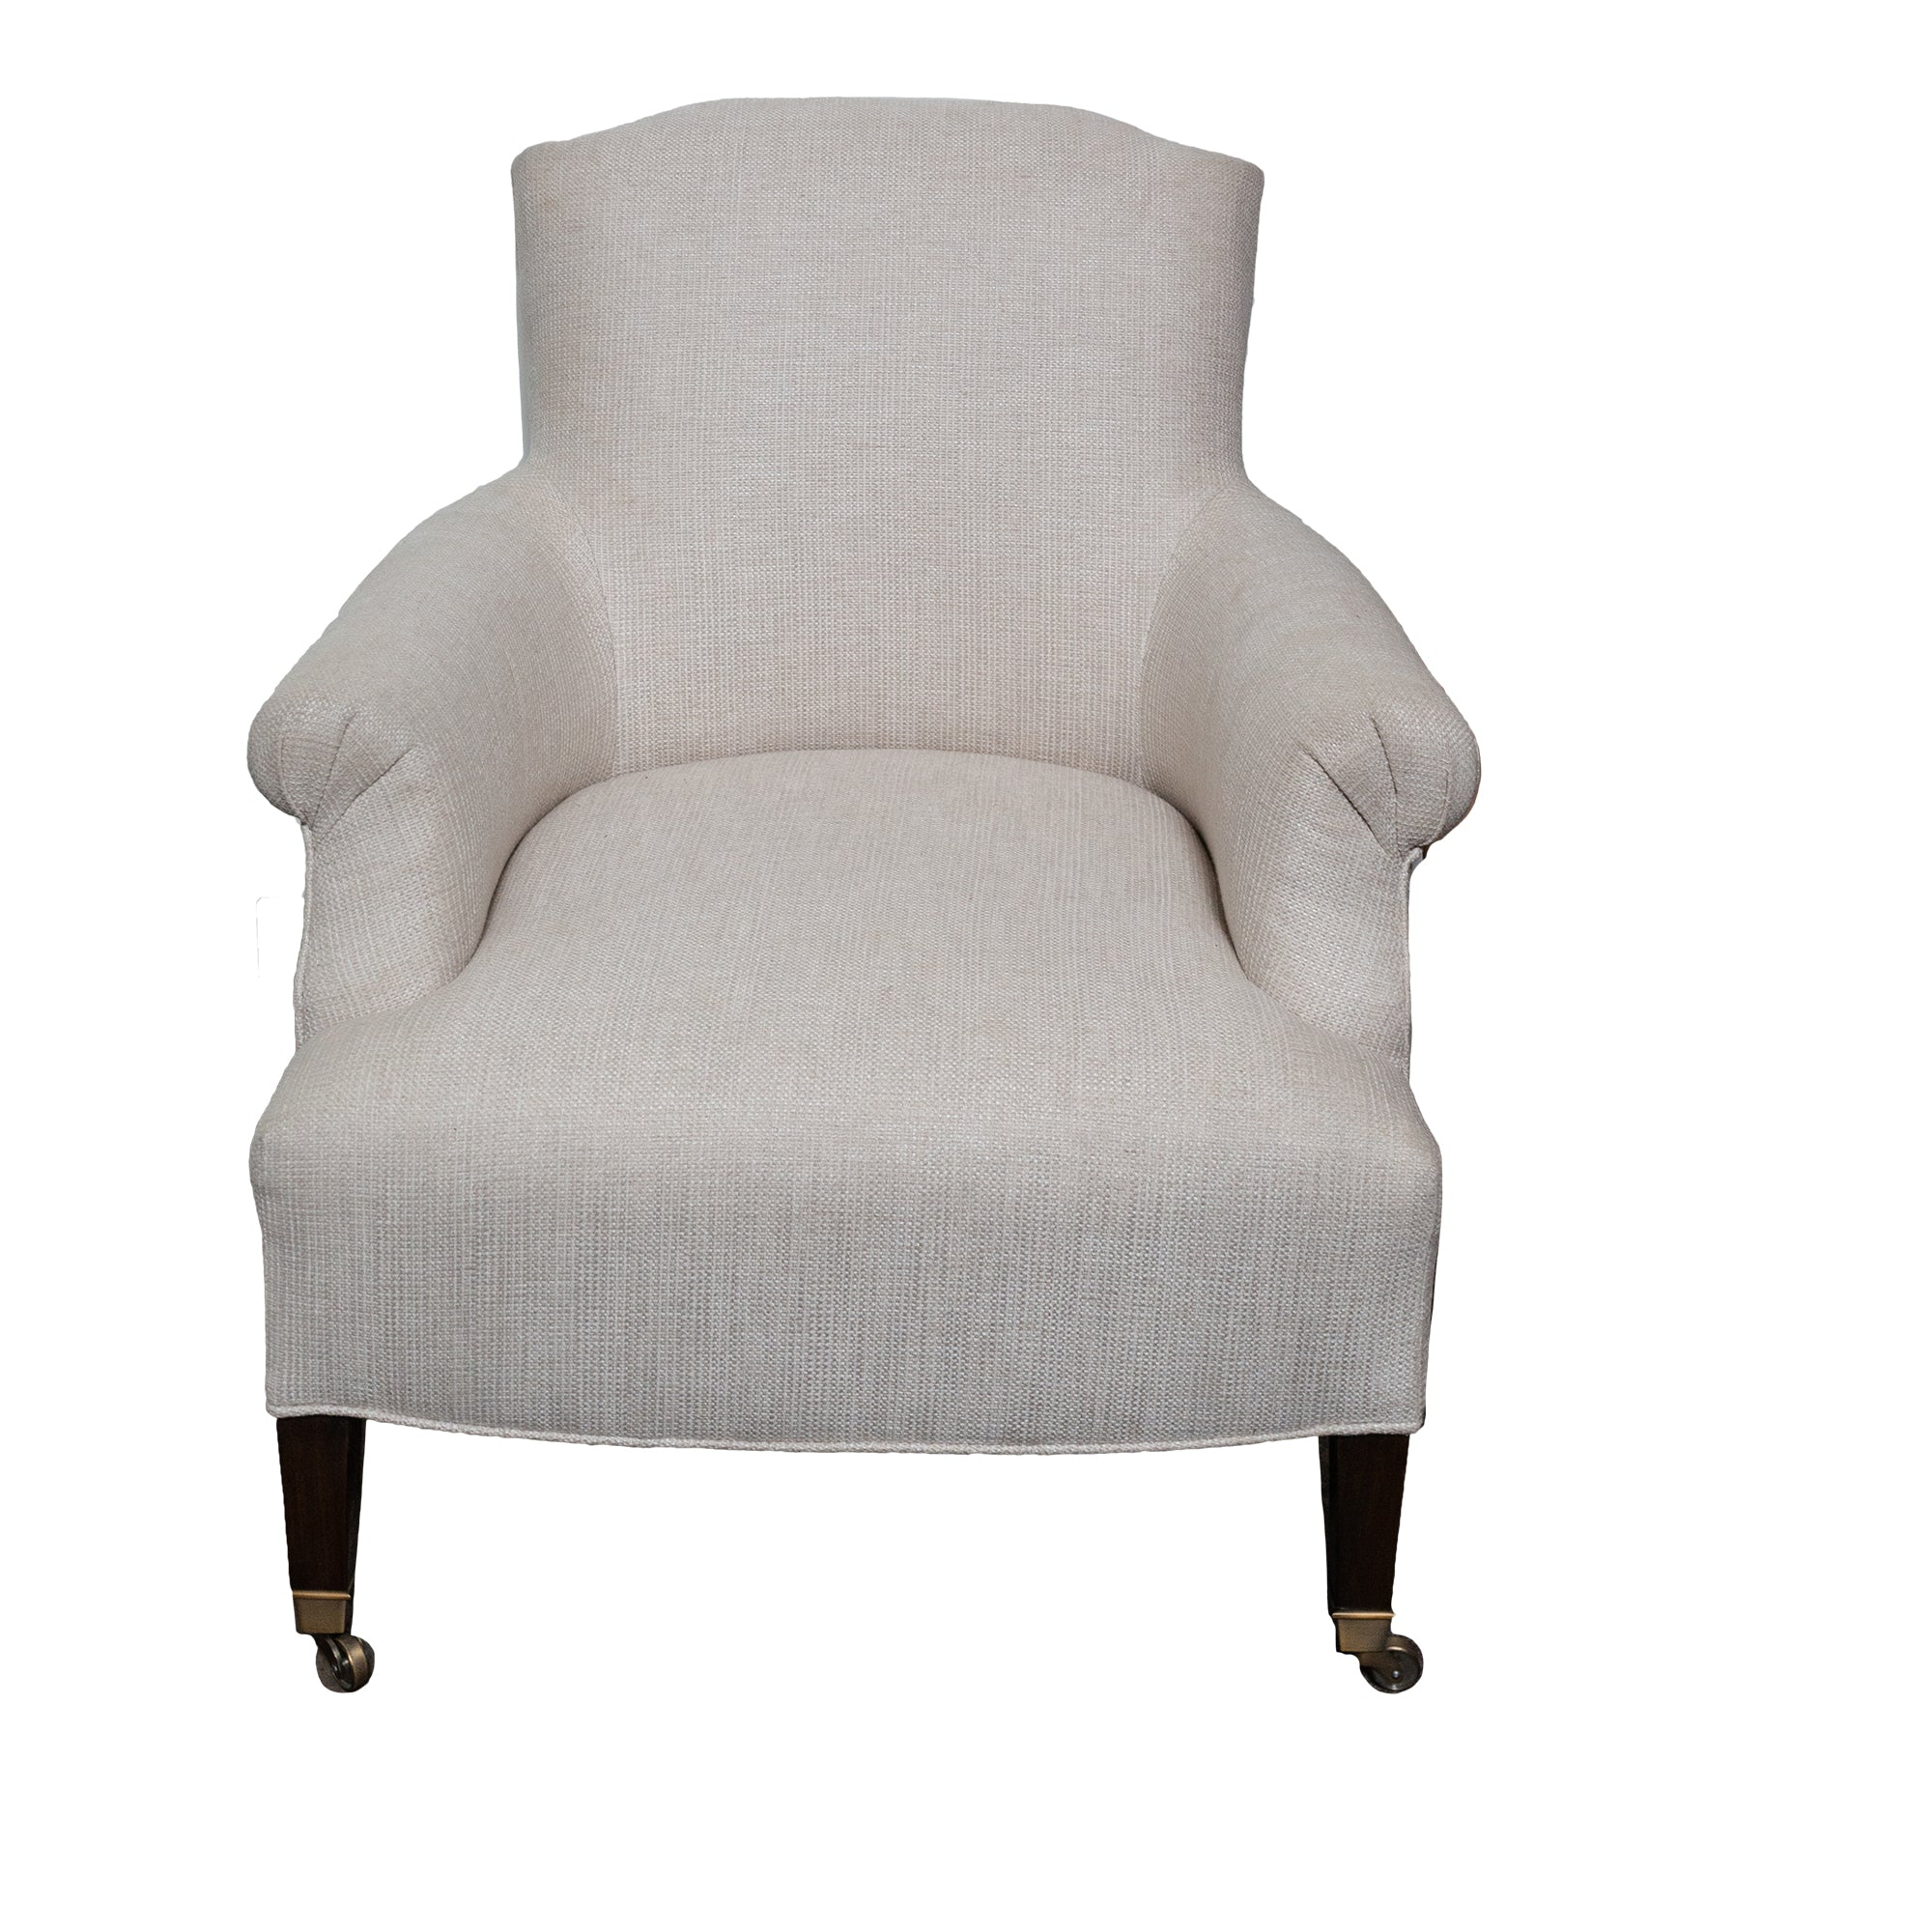 Neutral Smoking Chair - Amy Berry Home